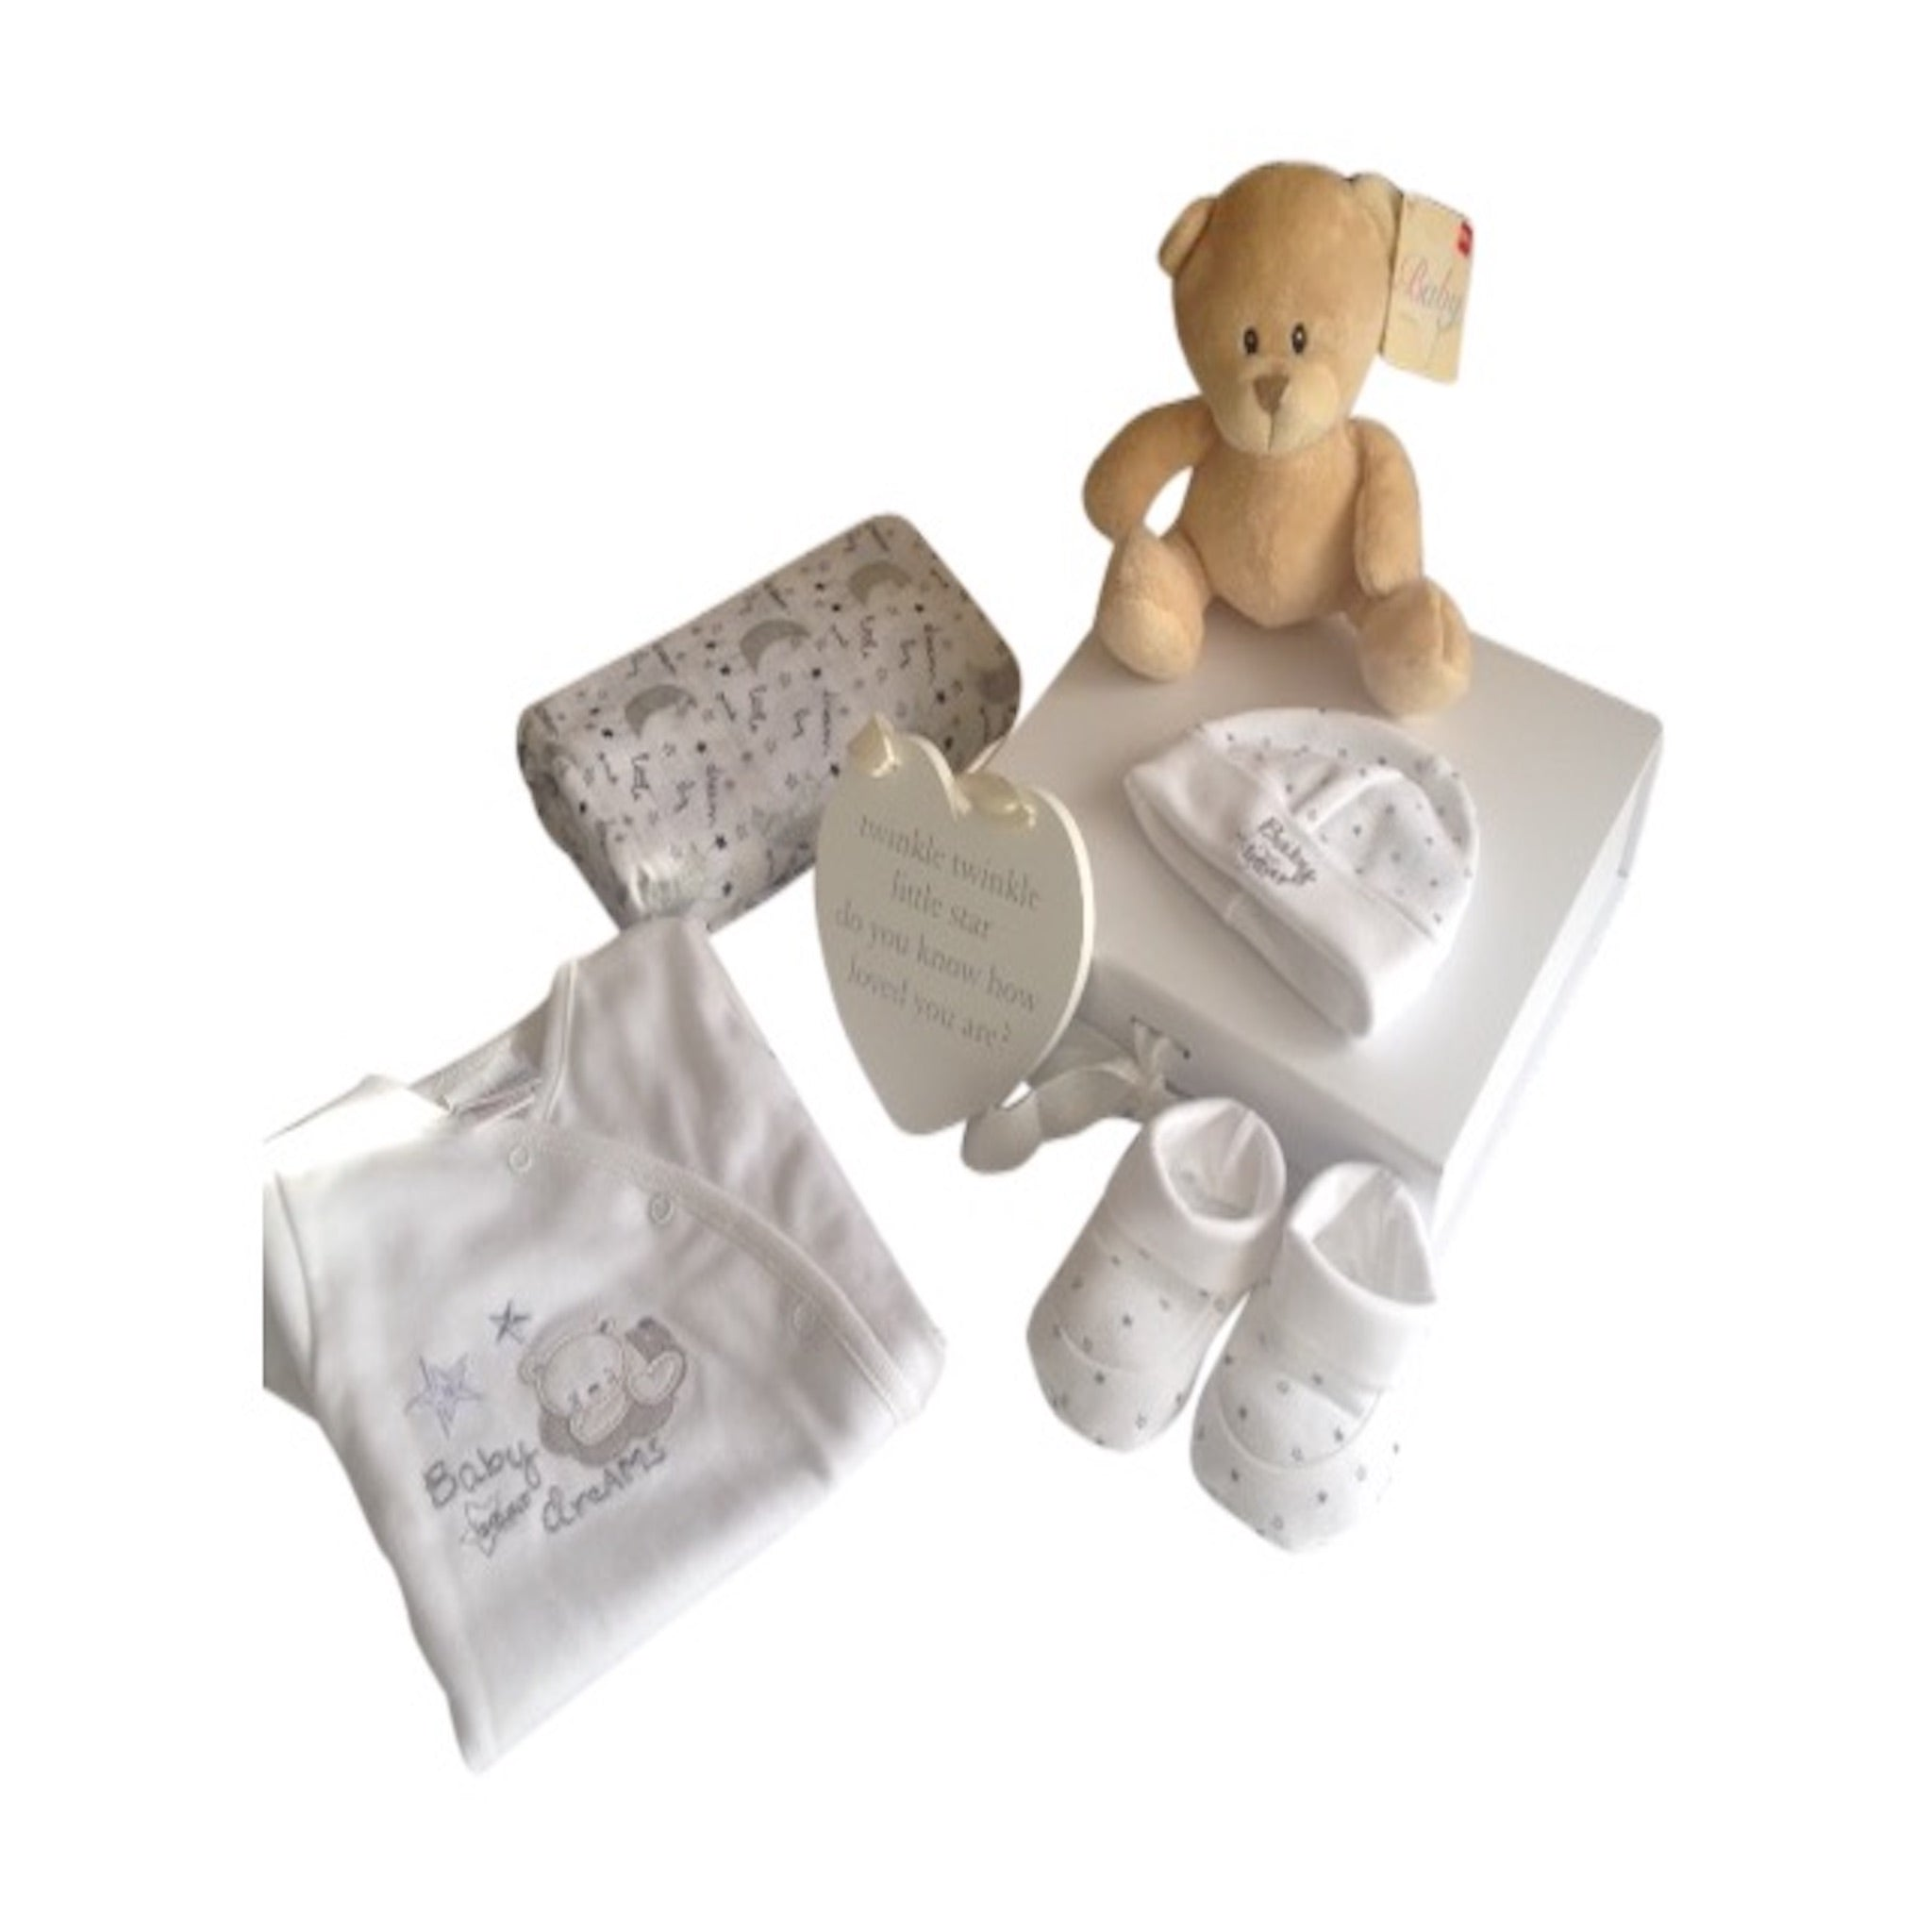 Unisex Baby Gift Boxes - Mini Me Gift Box Shop e0e174b269c9